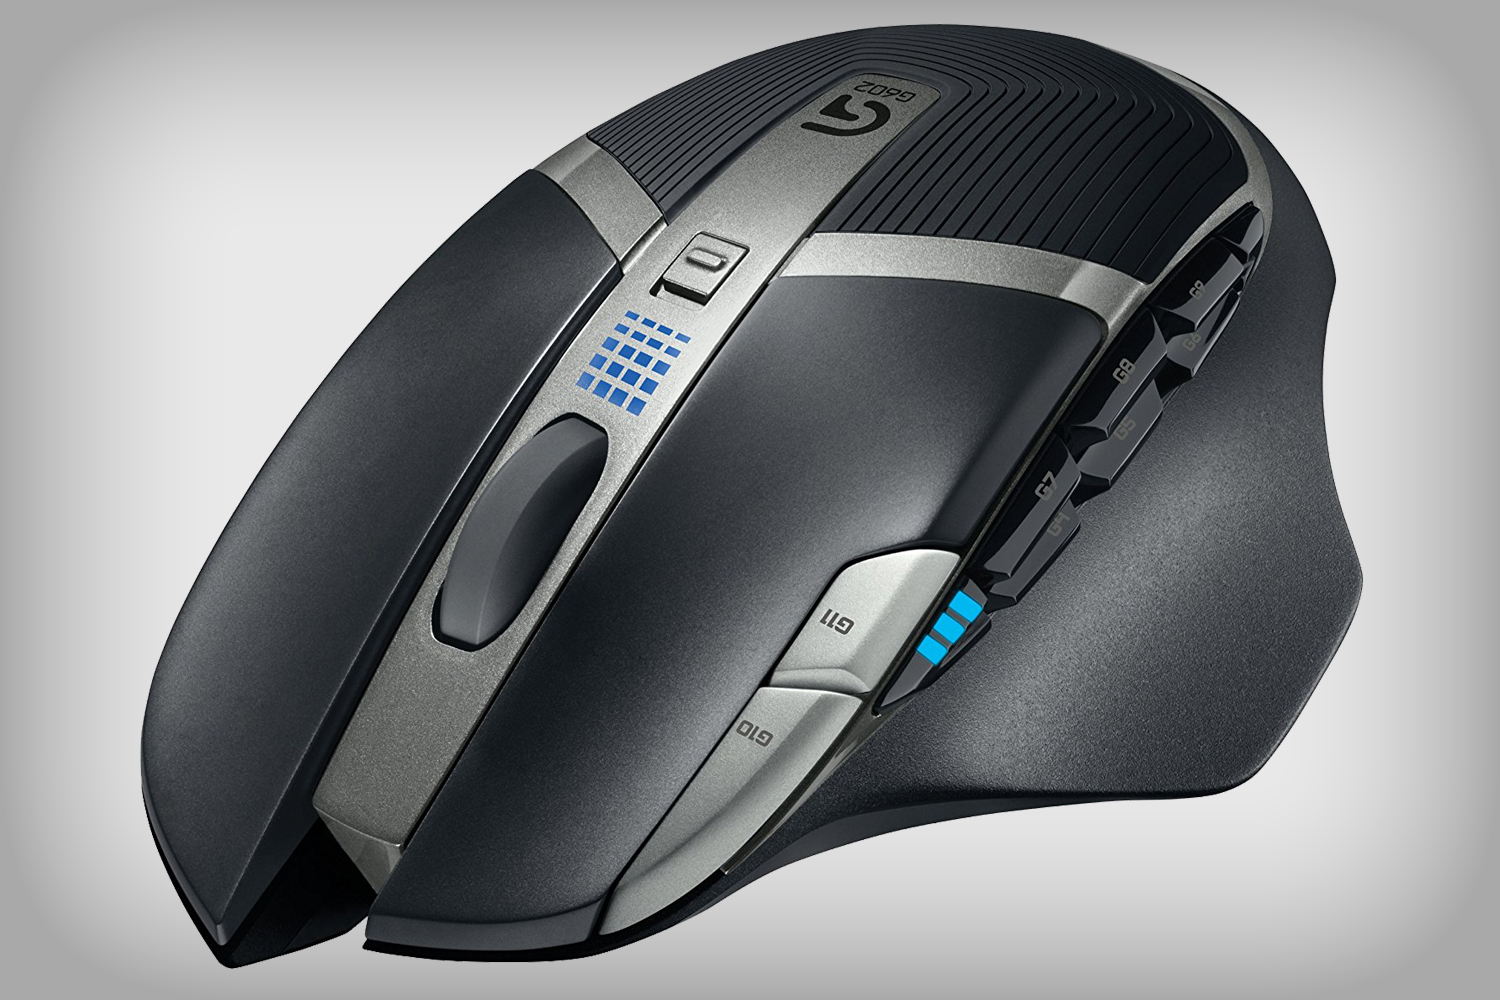 I ordered a new Microsoft mouse and keyboard (with